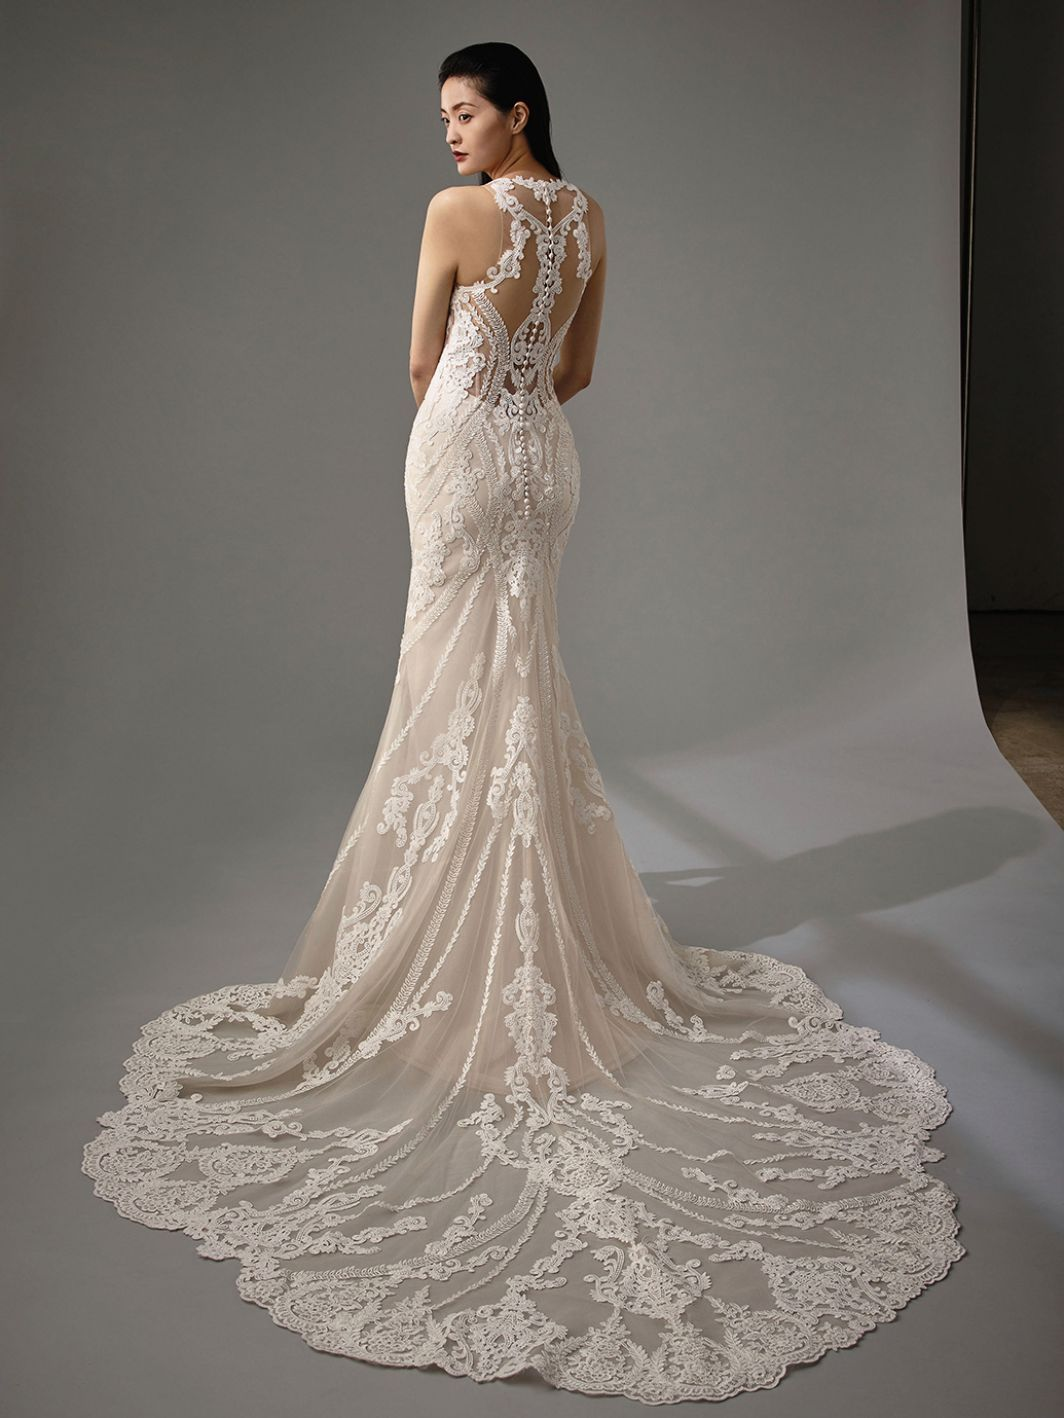 Lace Fit And Flare Gown In 2020 Wedding Day Dresses Enzoani Wedding Dresses Stunning Wedding Dresses